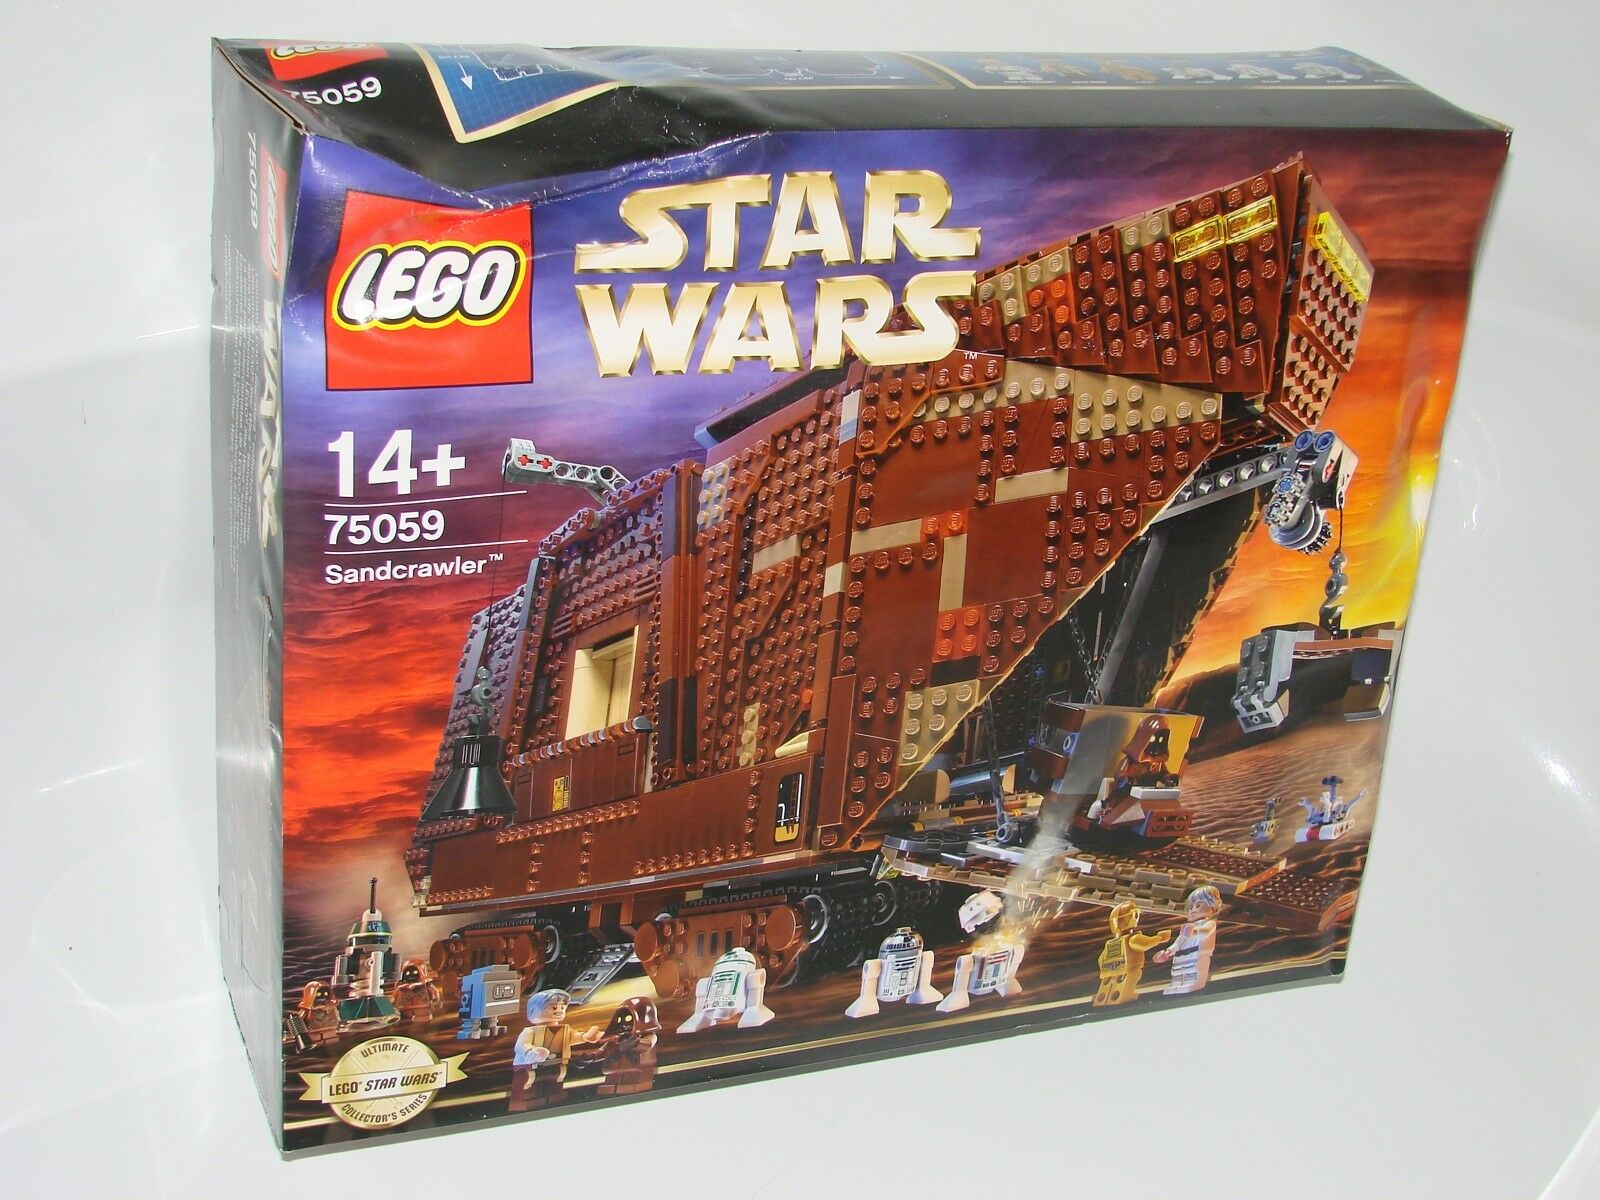 LEGO ® Star Wars ™ 75059 Sandcrawler ™ Nouveau 2tew était humide New 2nd chce Water Damage